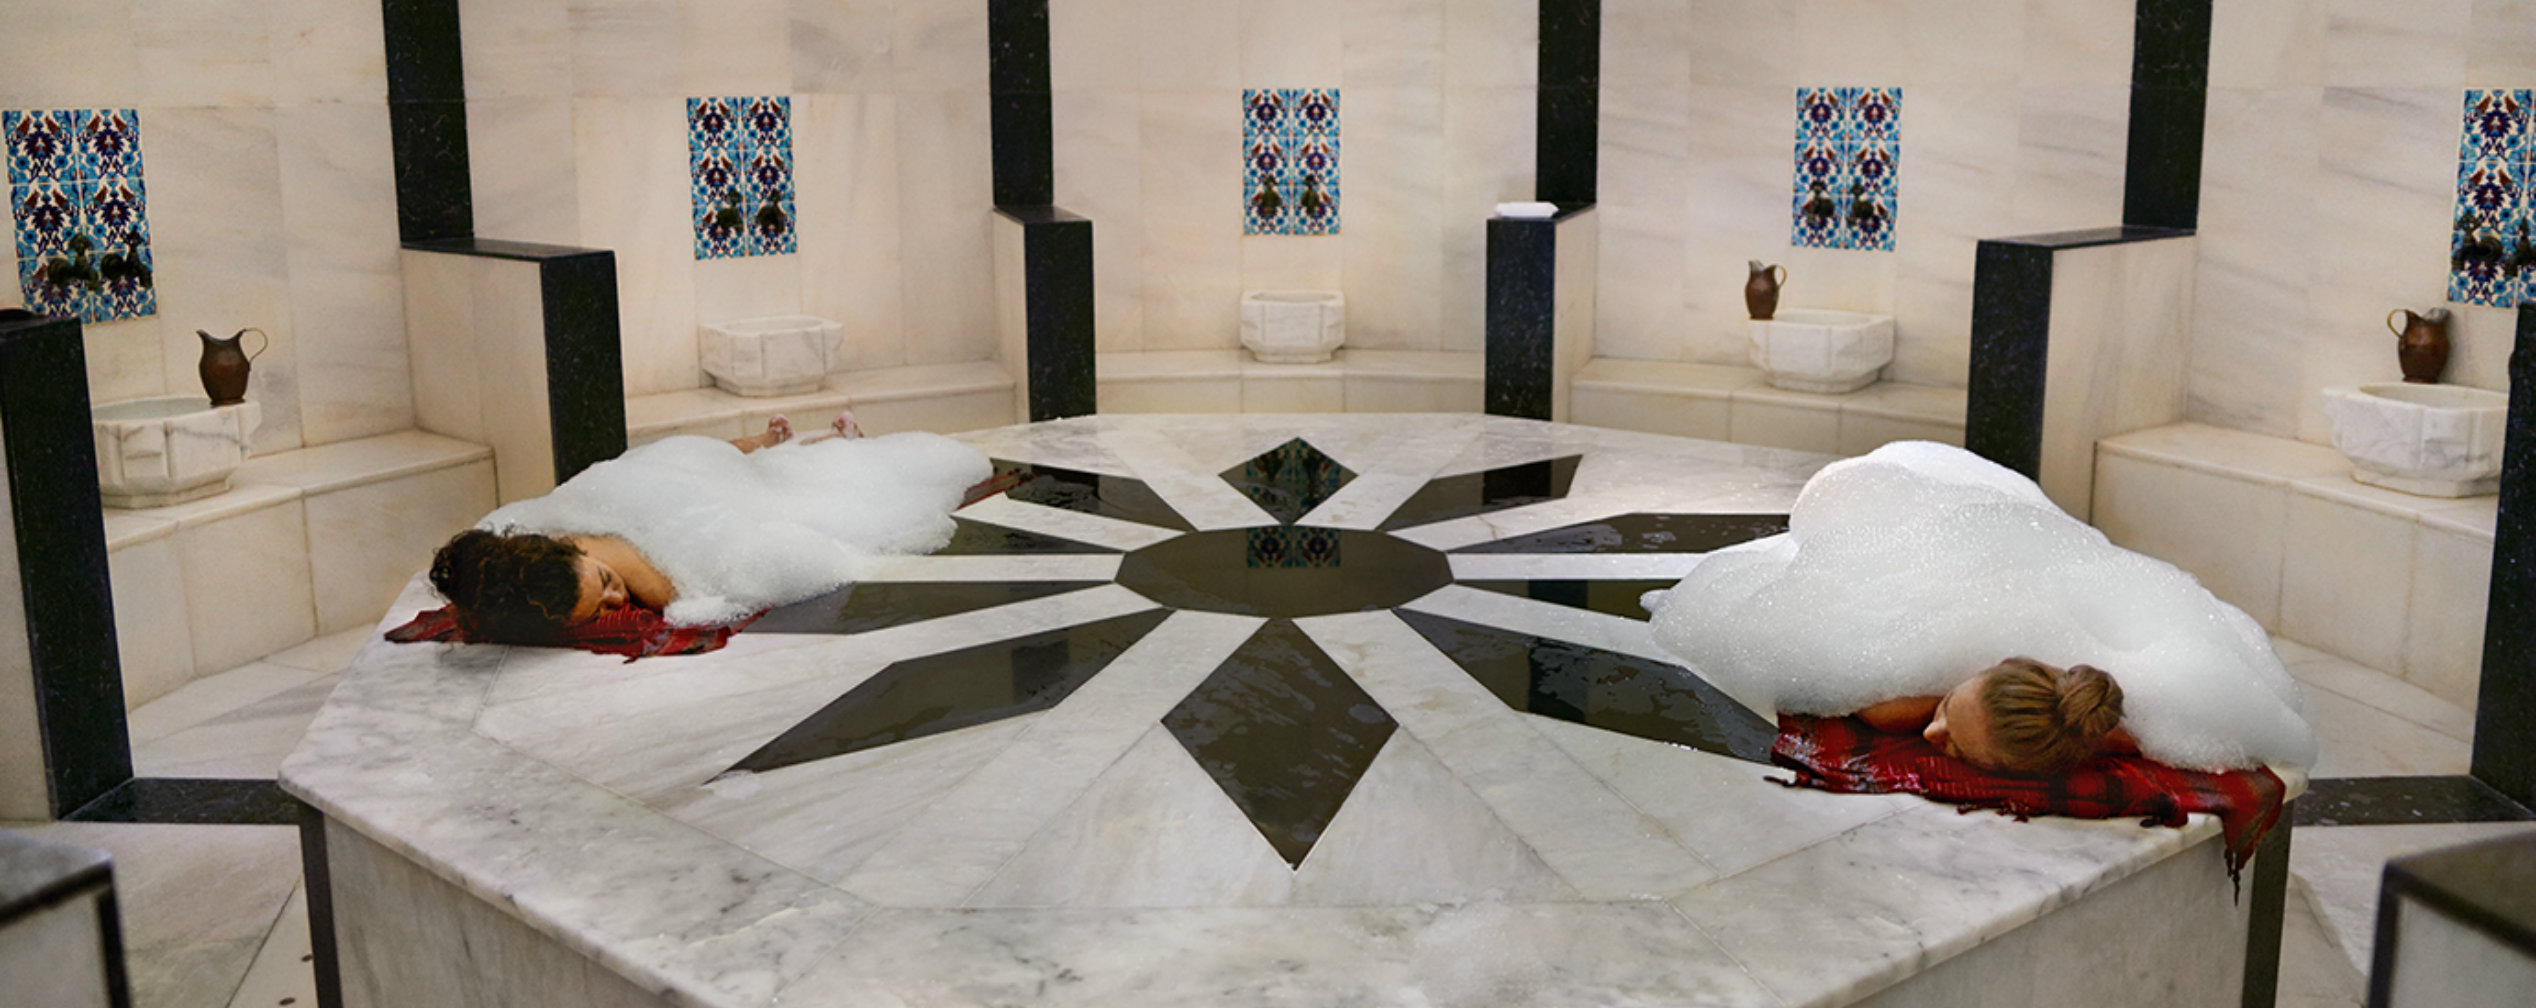 Turkish massages Hamam Ritual